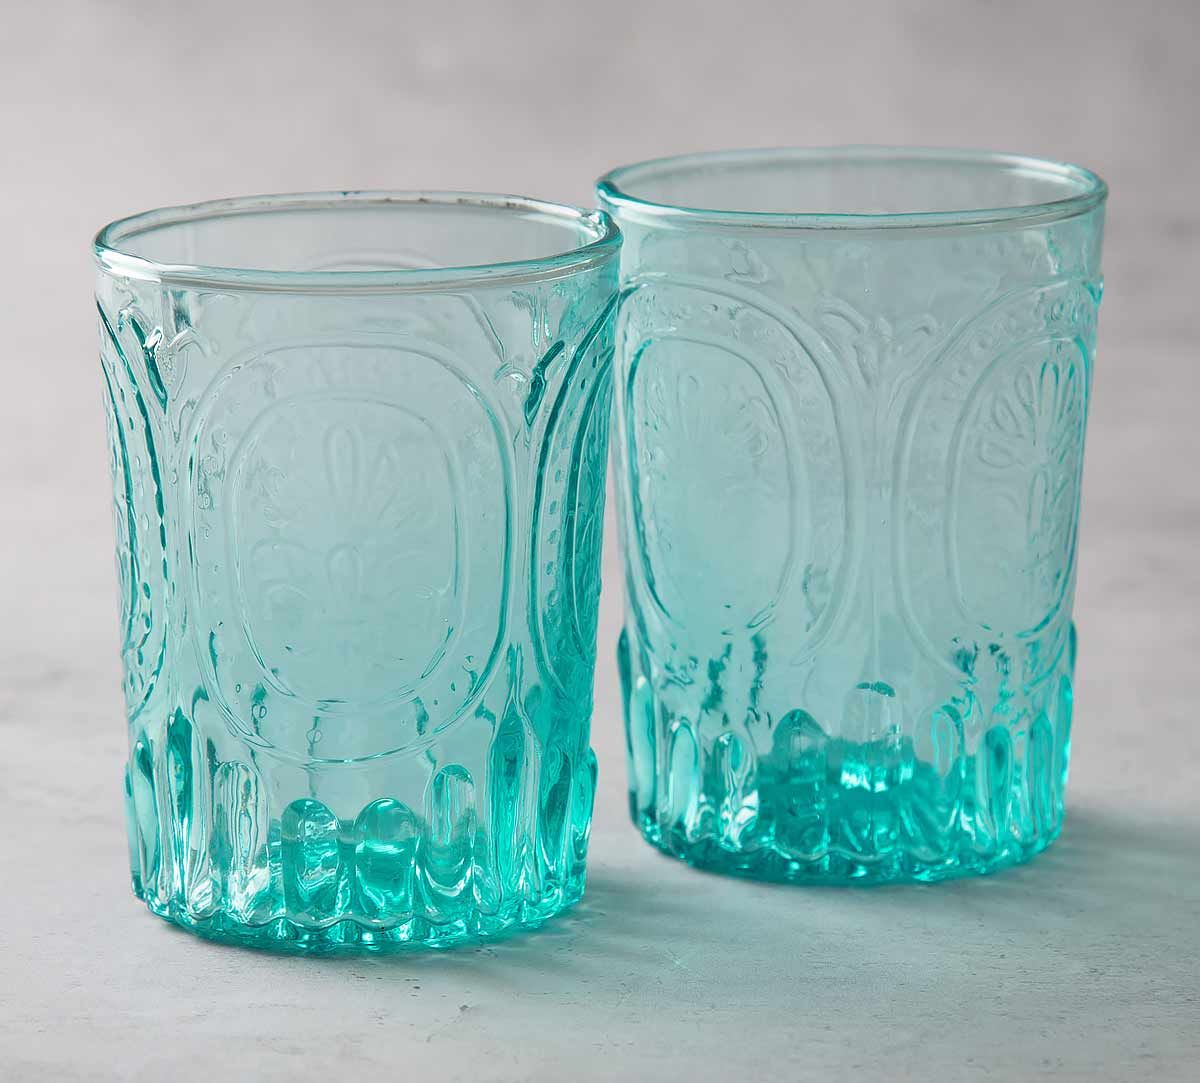 9f35baa31a04 India Circus Teal Glass Tumbler (Set of 2). Tap to expand